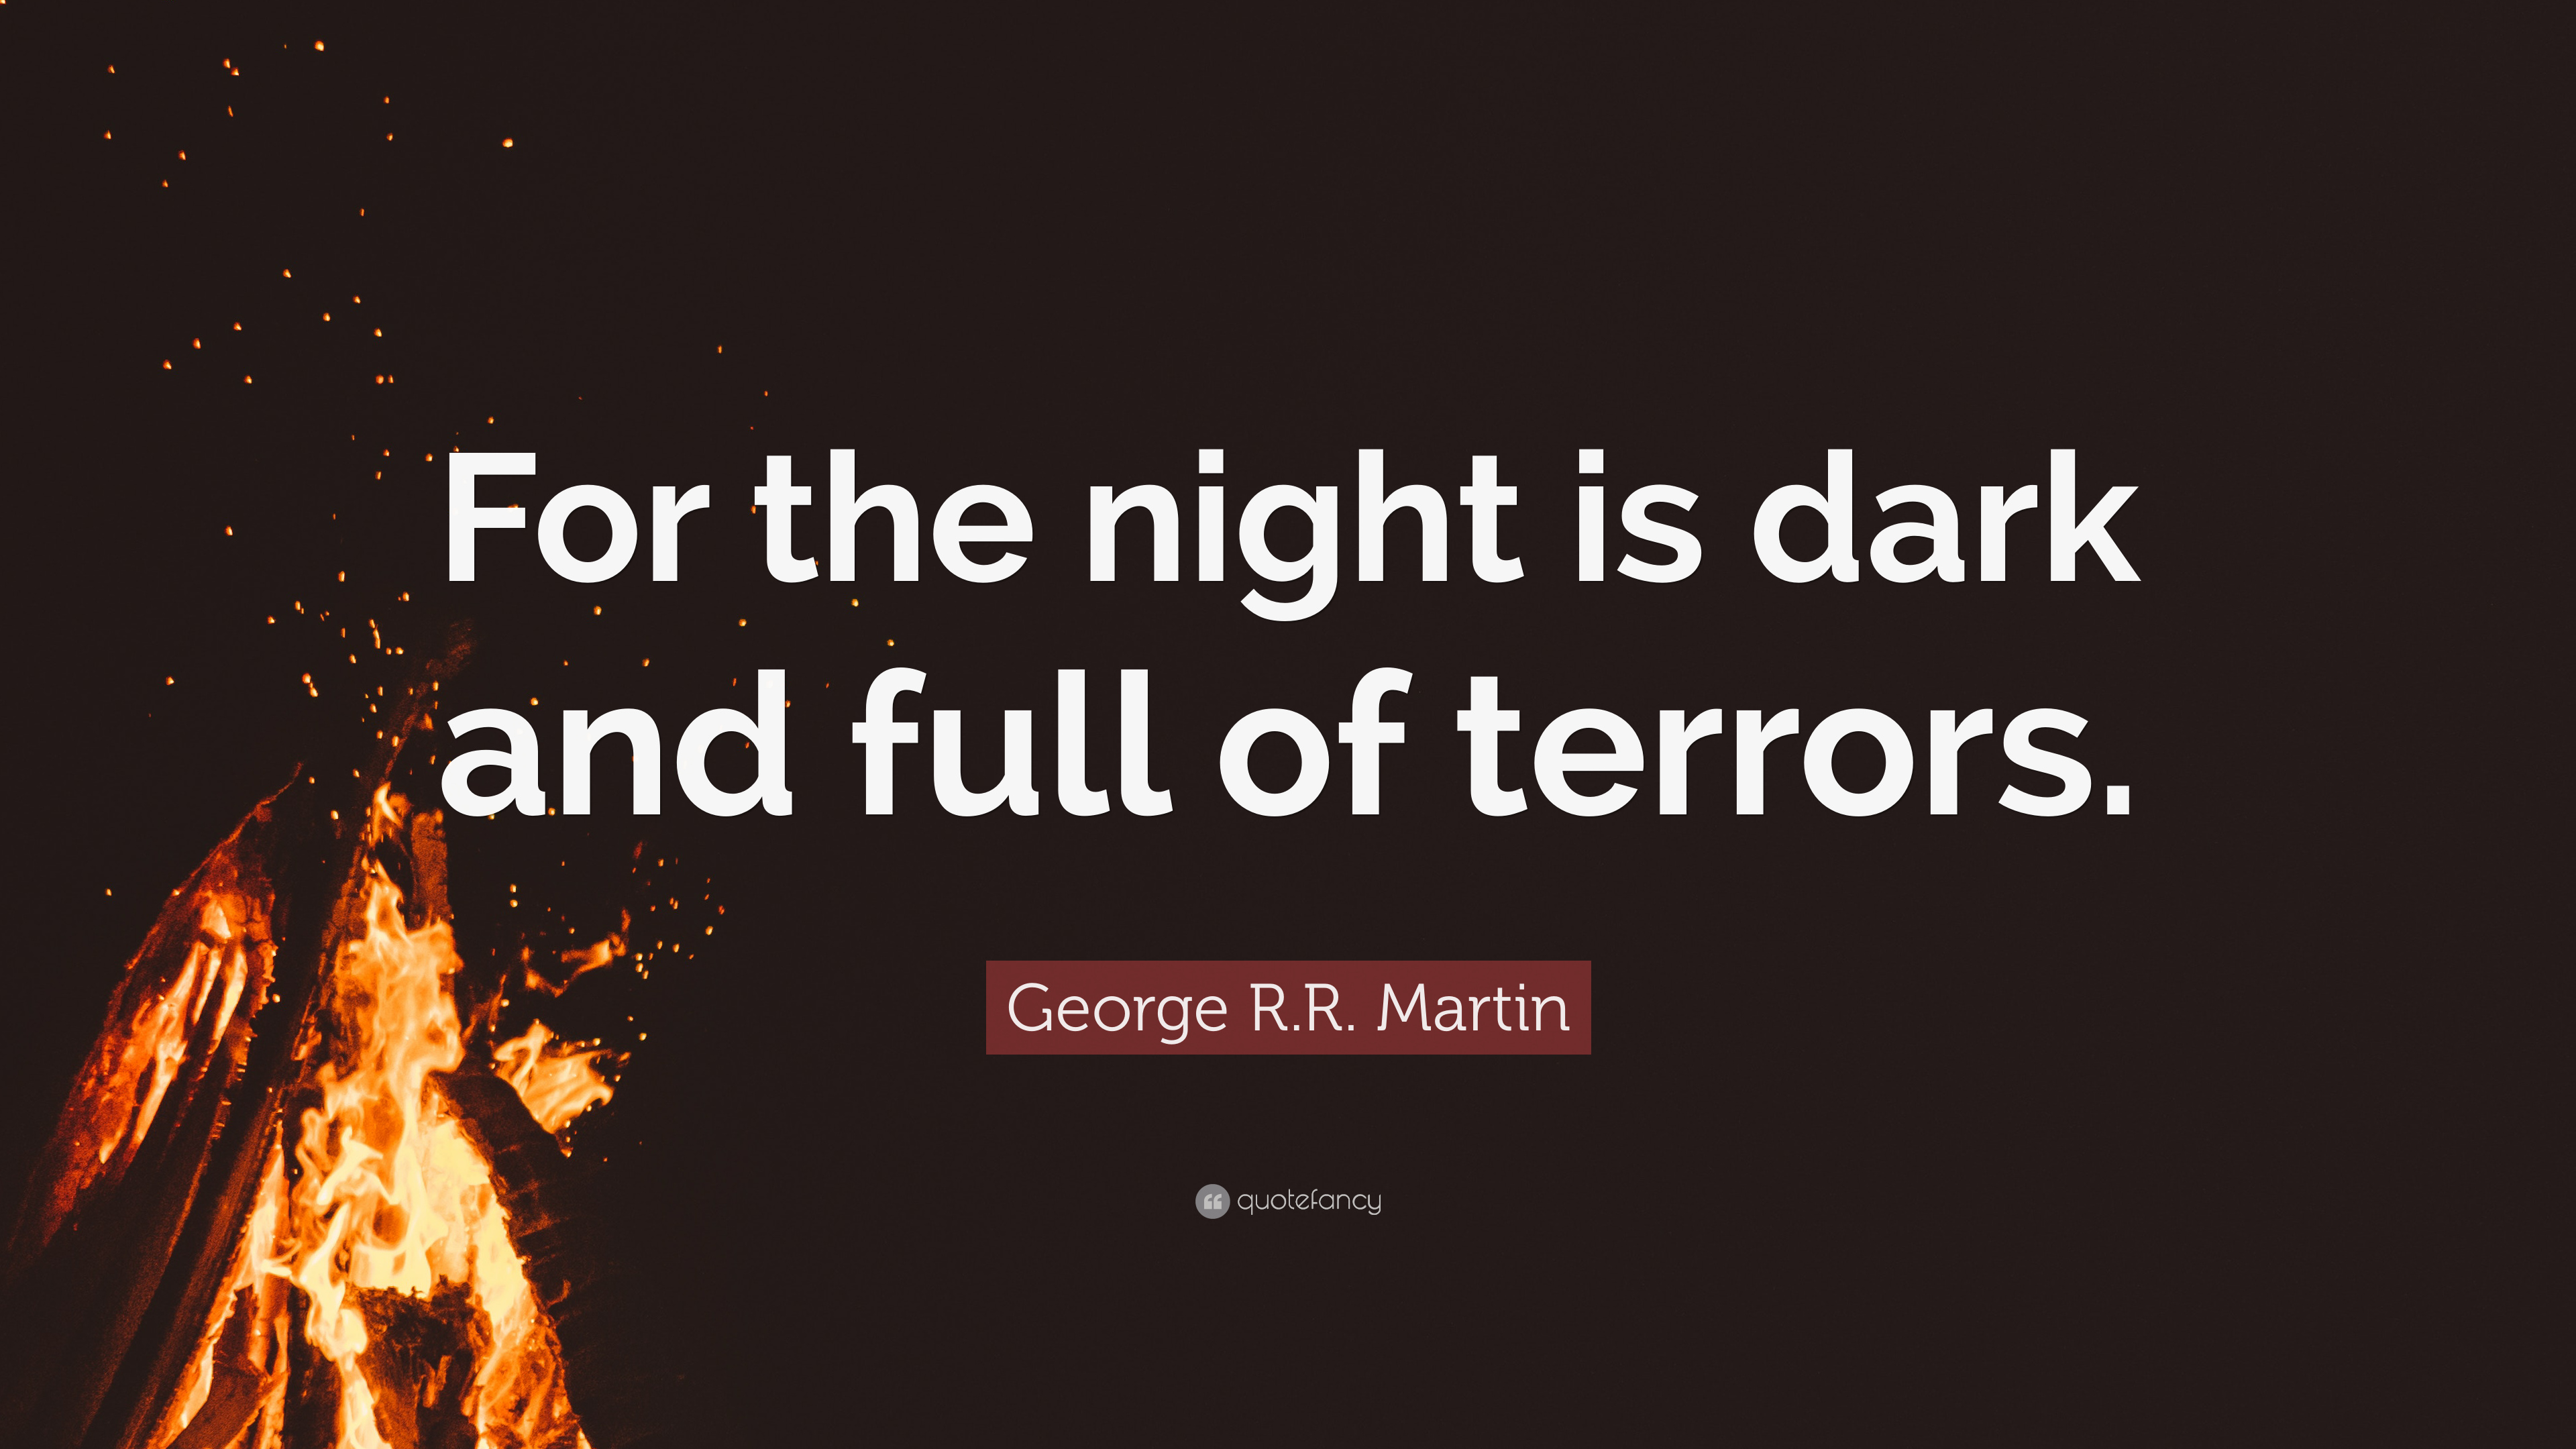 Popular Wallpaper Night Dark - 6361493-George-R-R-Martin-Quote-For-the-night-is-dark-and-full-of-terrors  Best Photo Reference.jpg